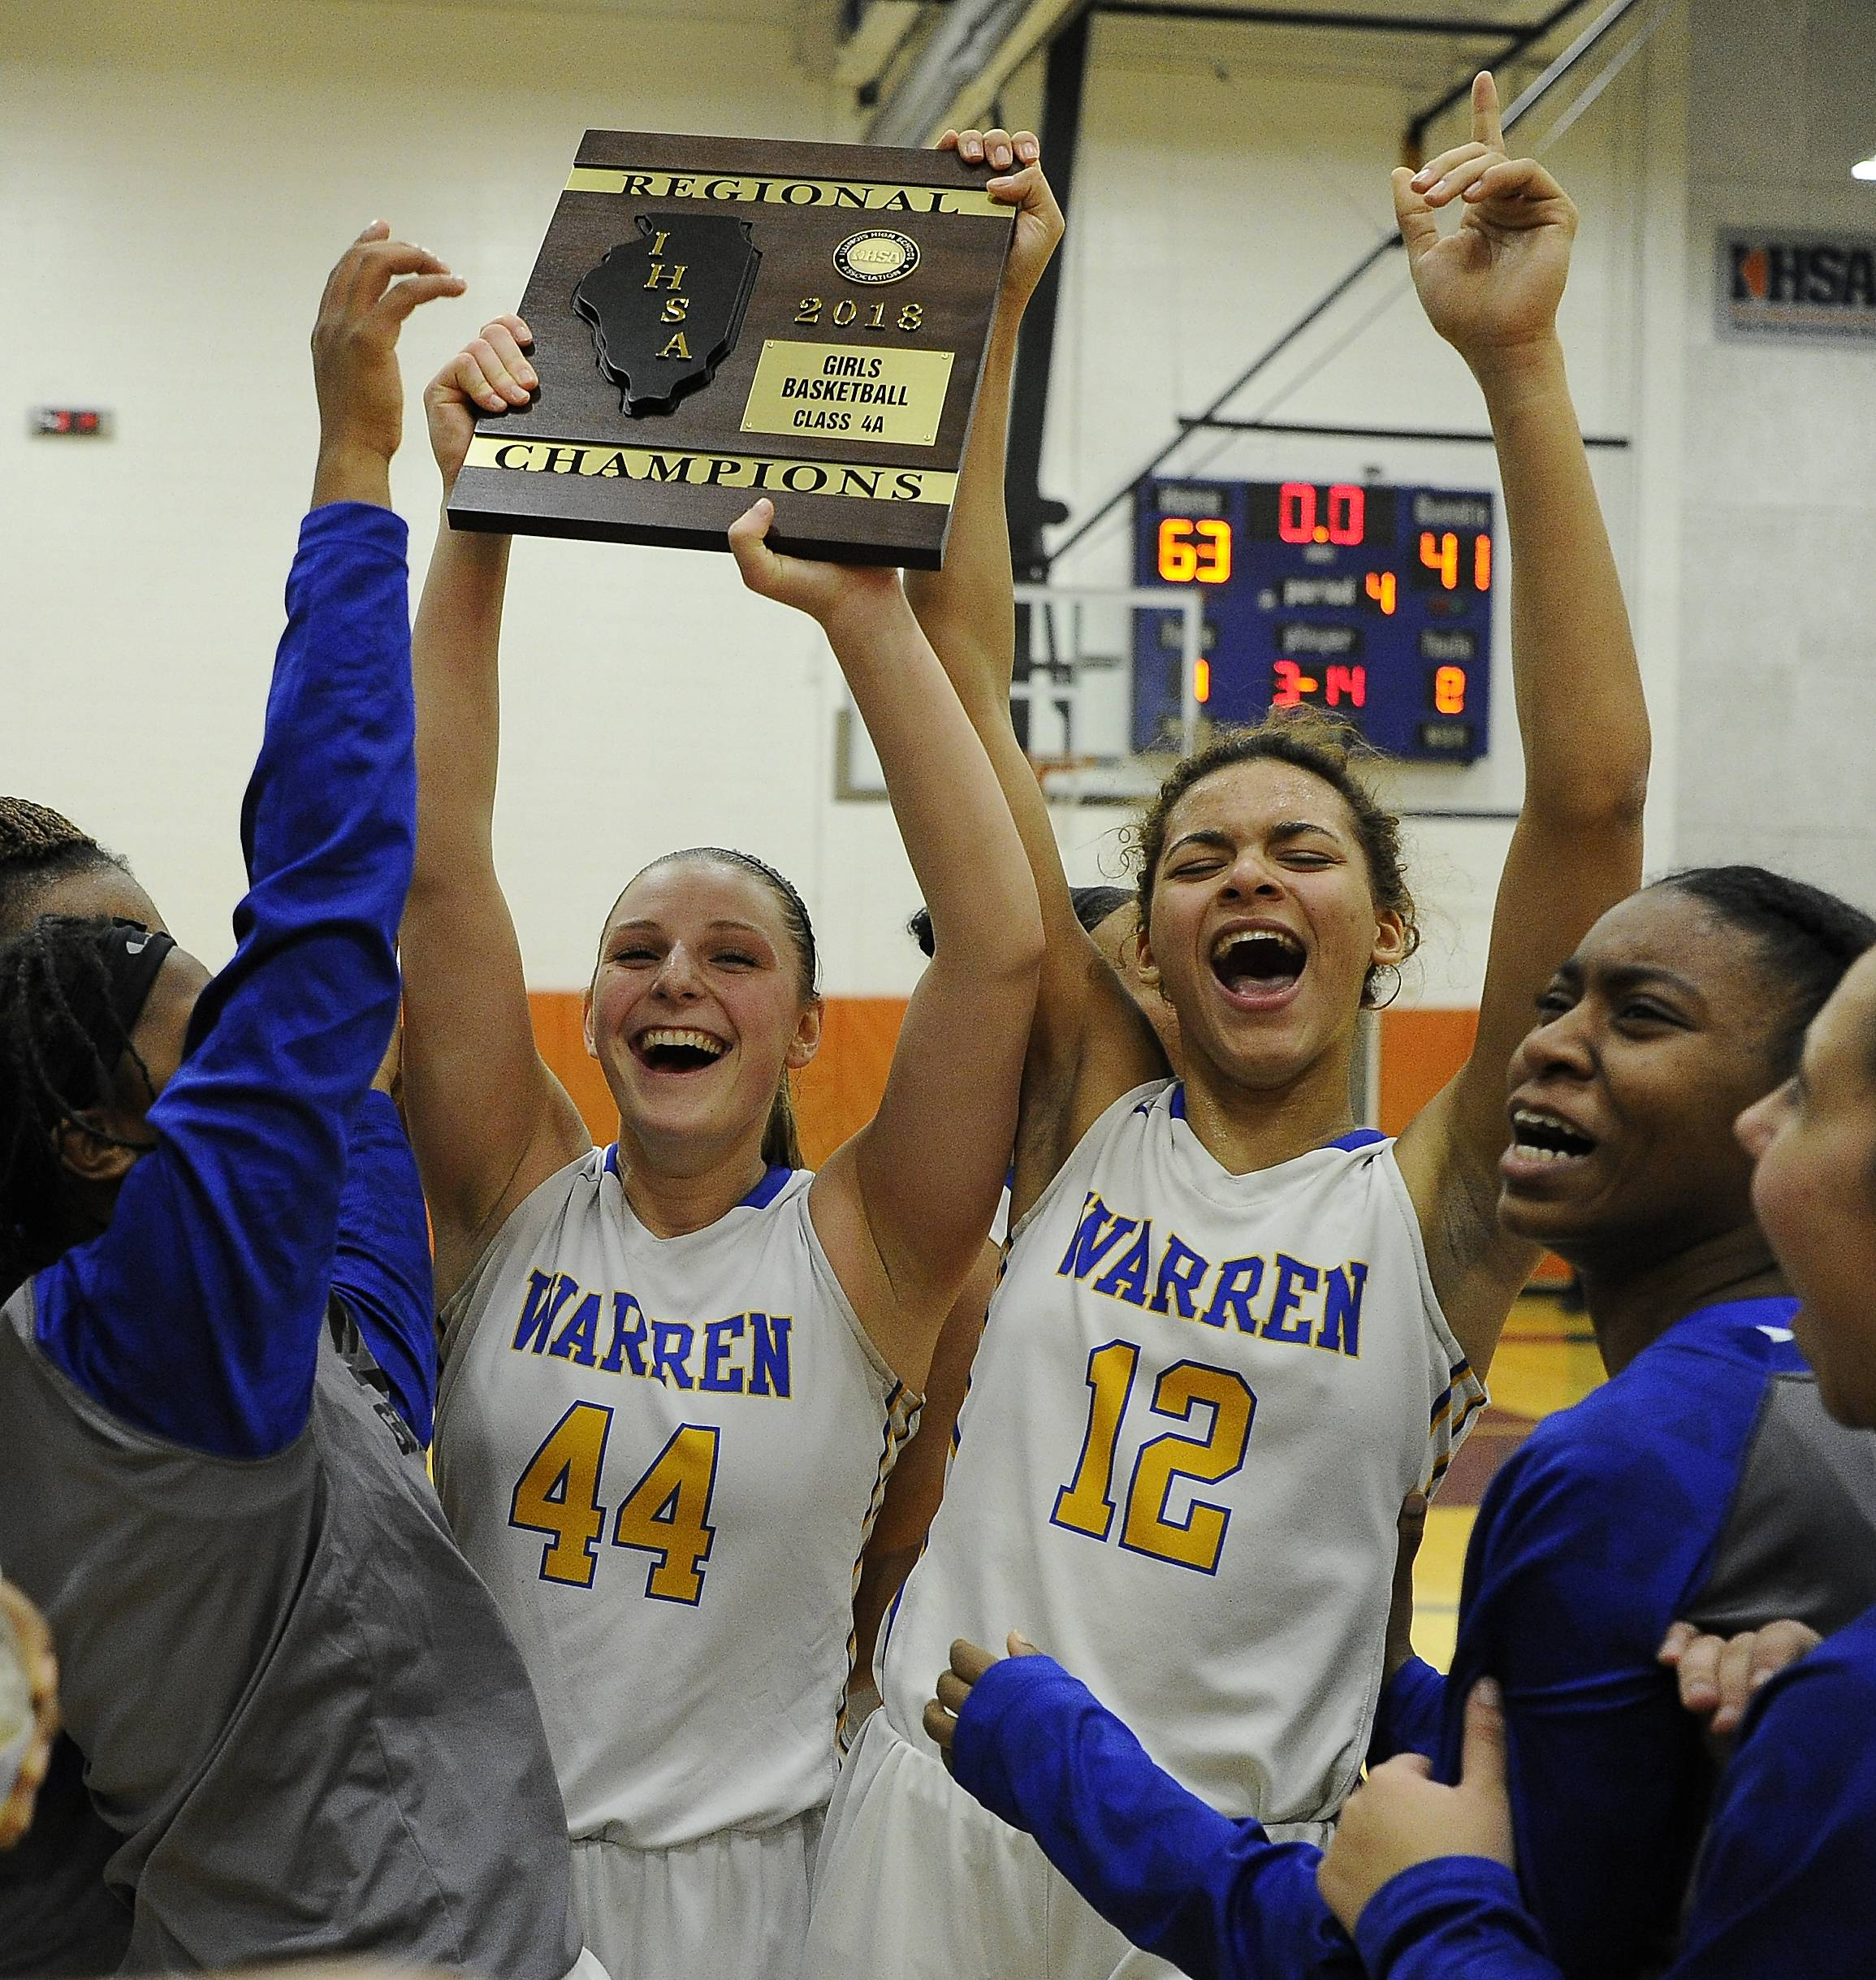 Kaylen Dickson, right, and teammate Jordyn Hughes celebrate a Warren win.